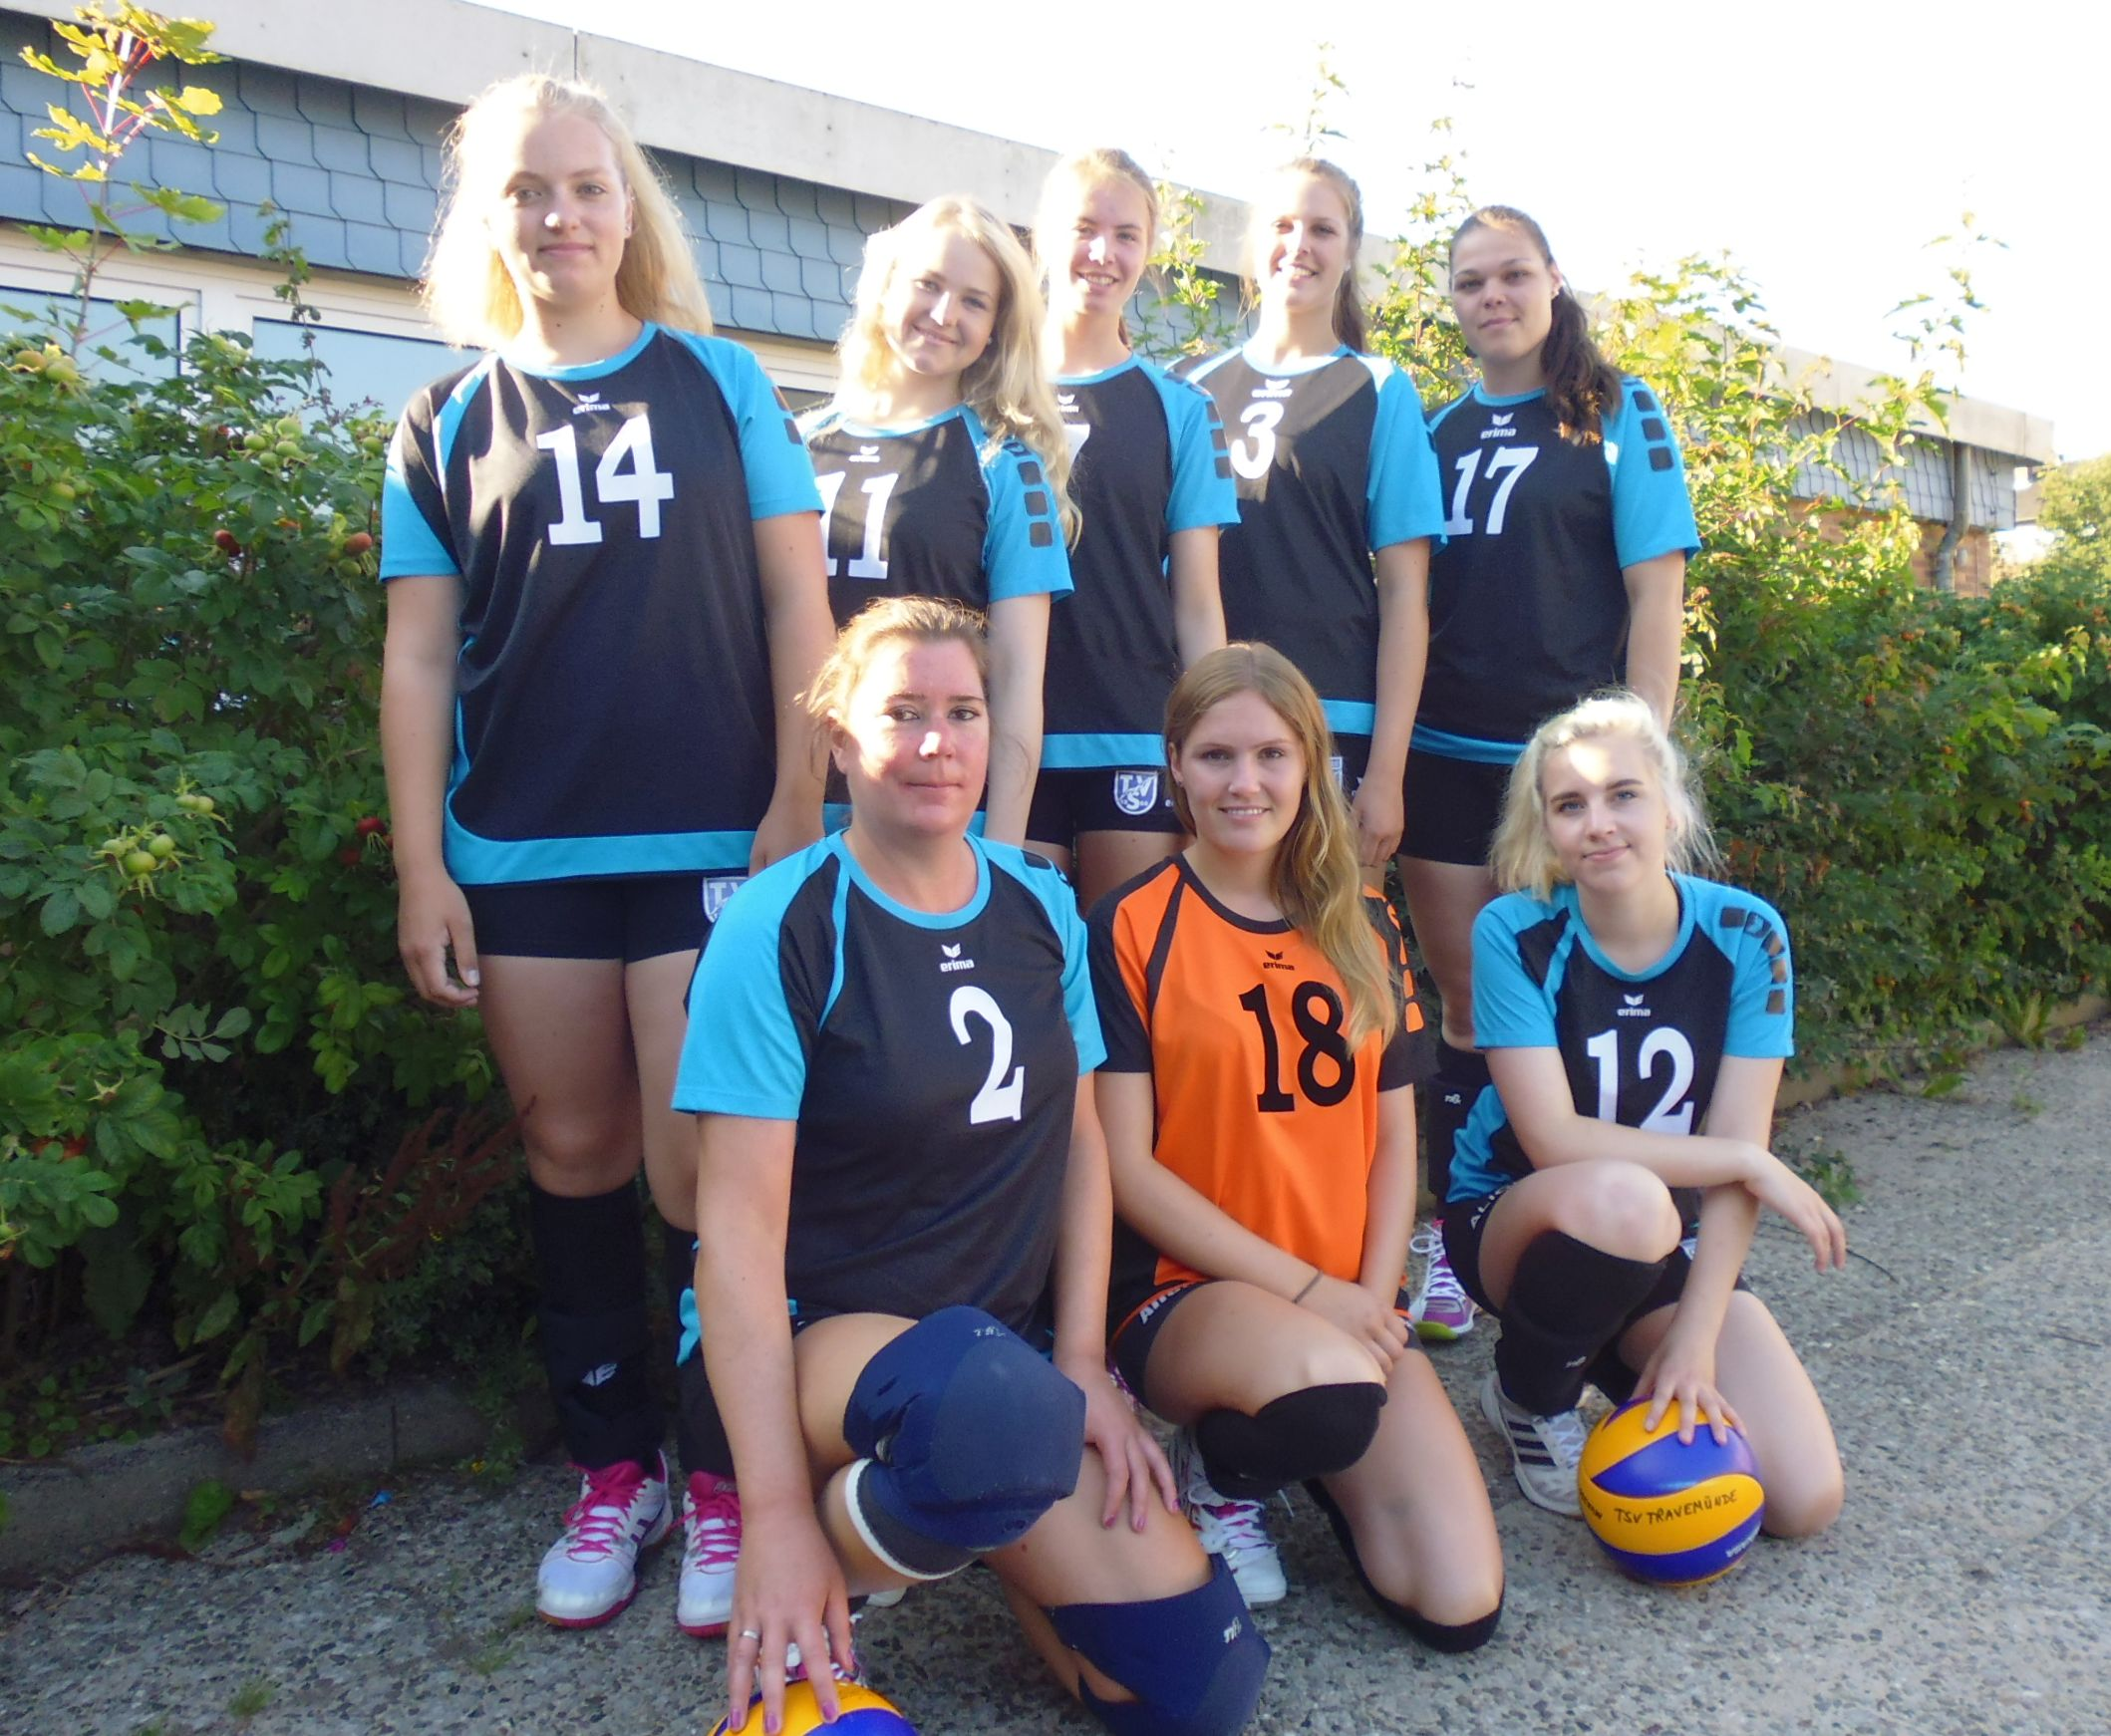 20150823 Damenteam Saison 15 16 Bild1